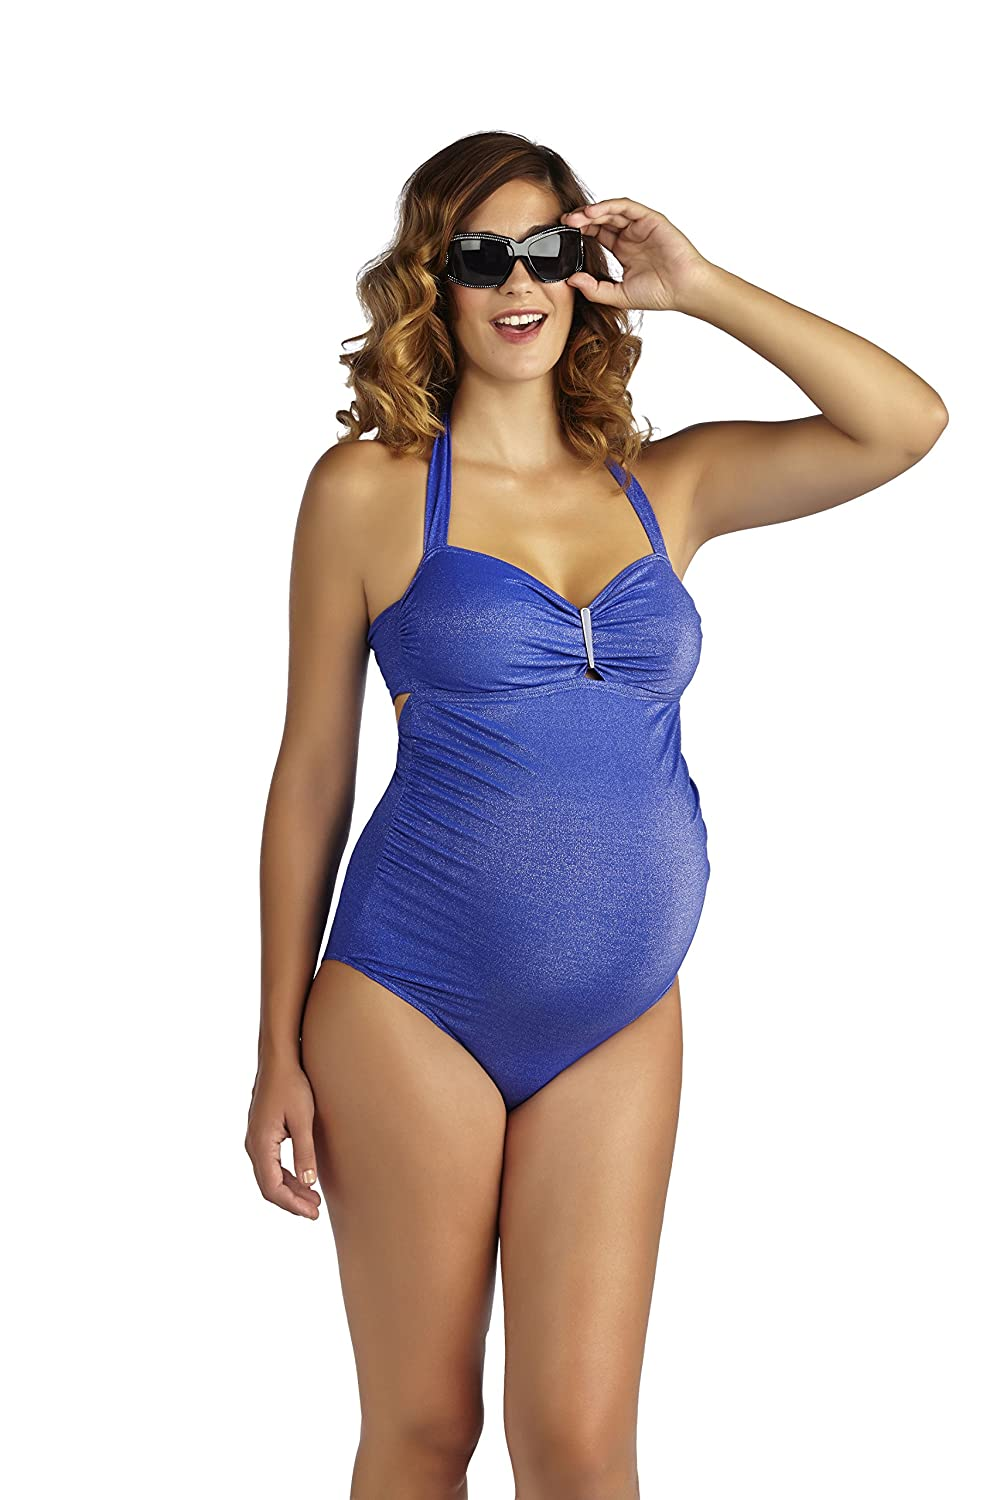 PEZ D'OR Maternity Palm Springs Lurex One Piece bluee